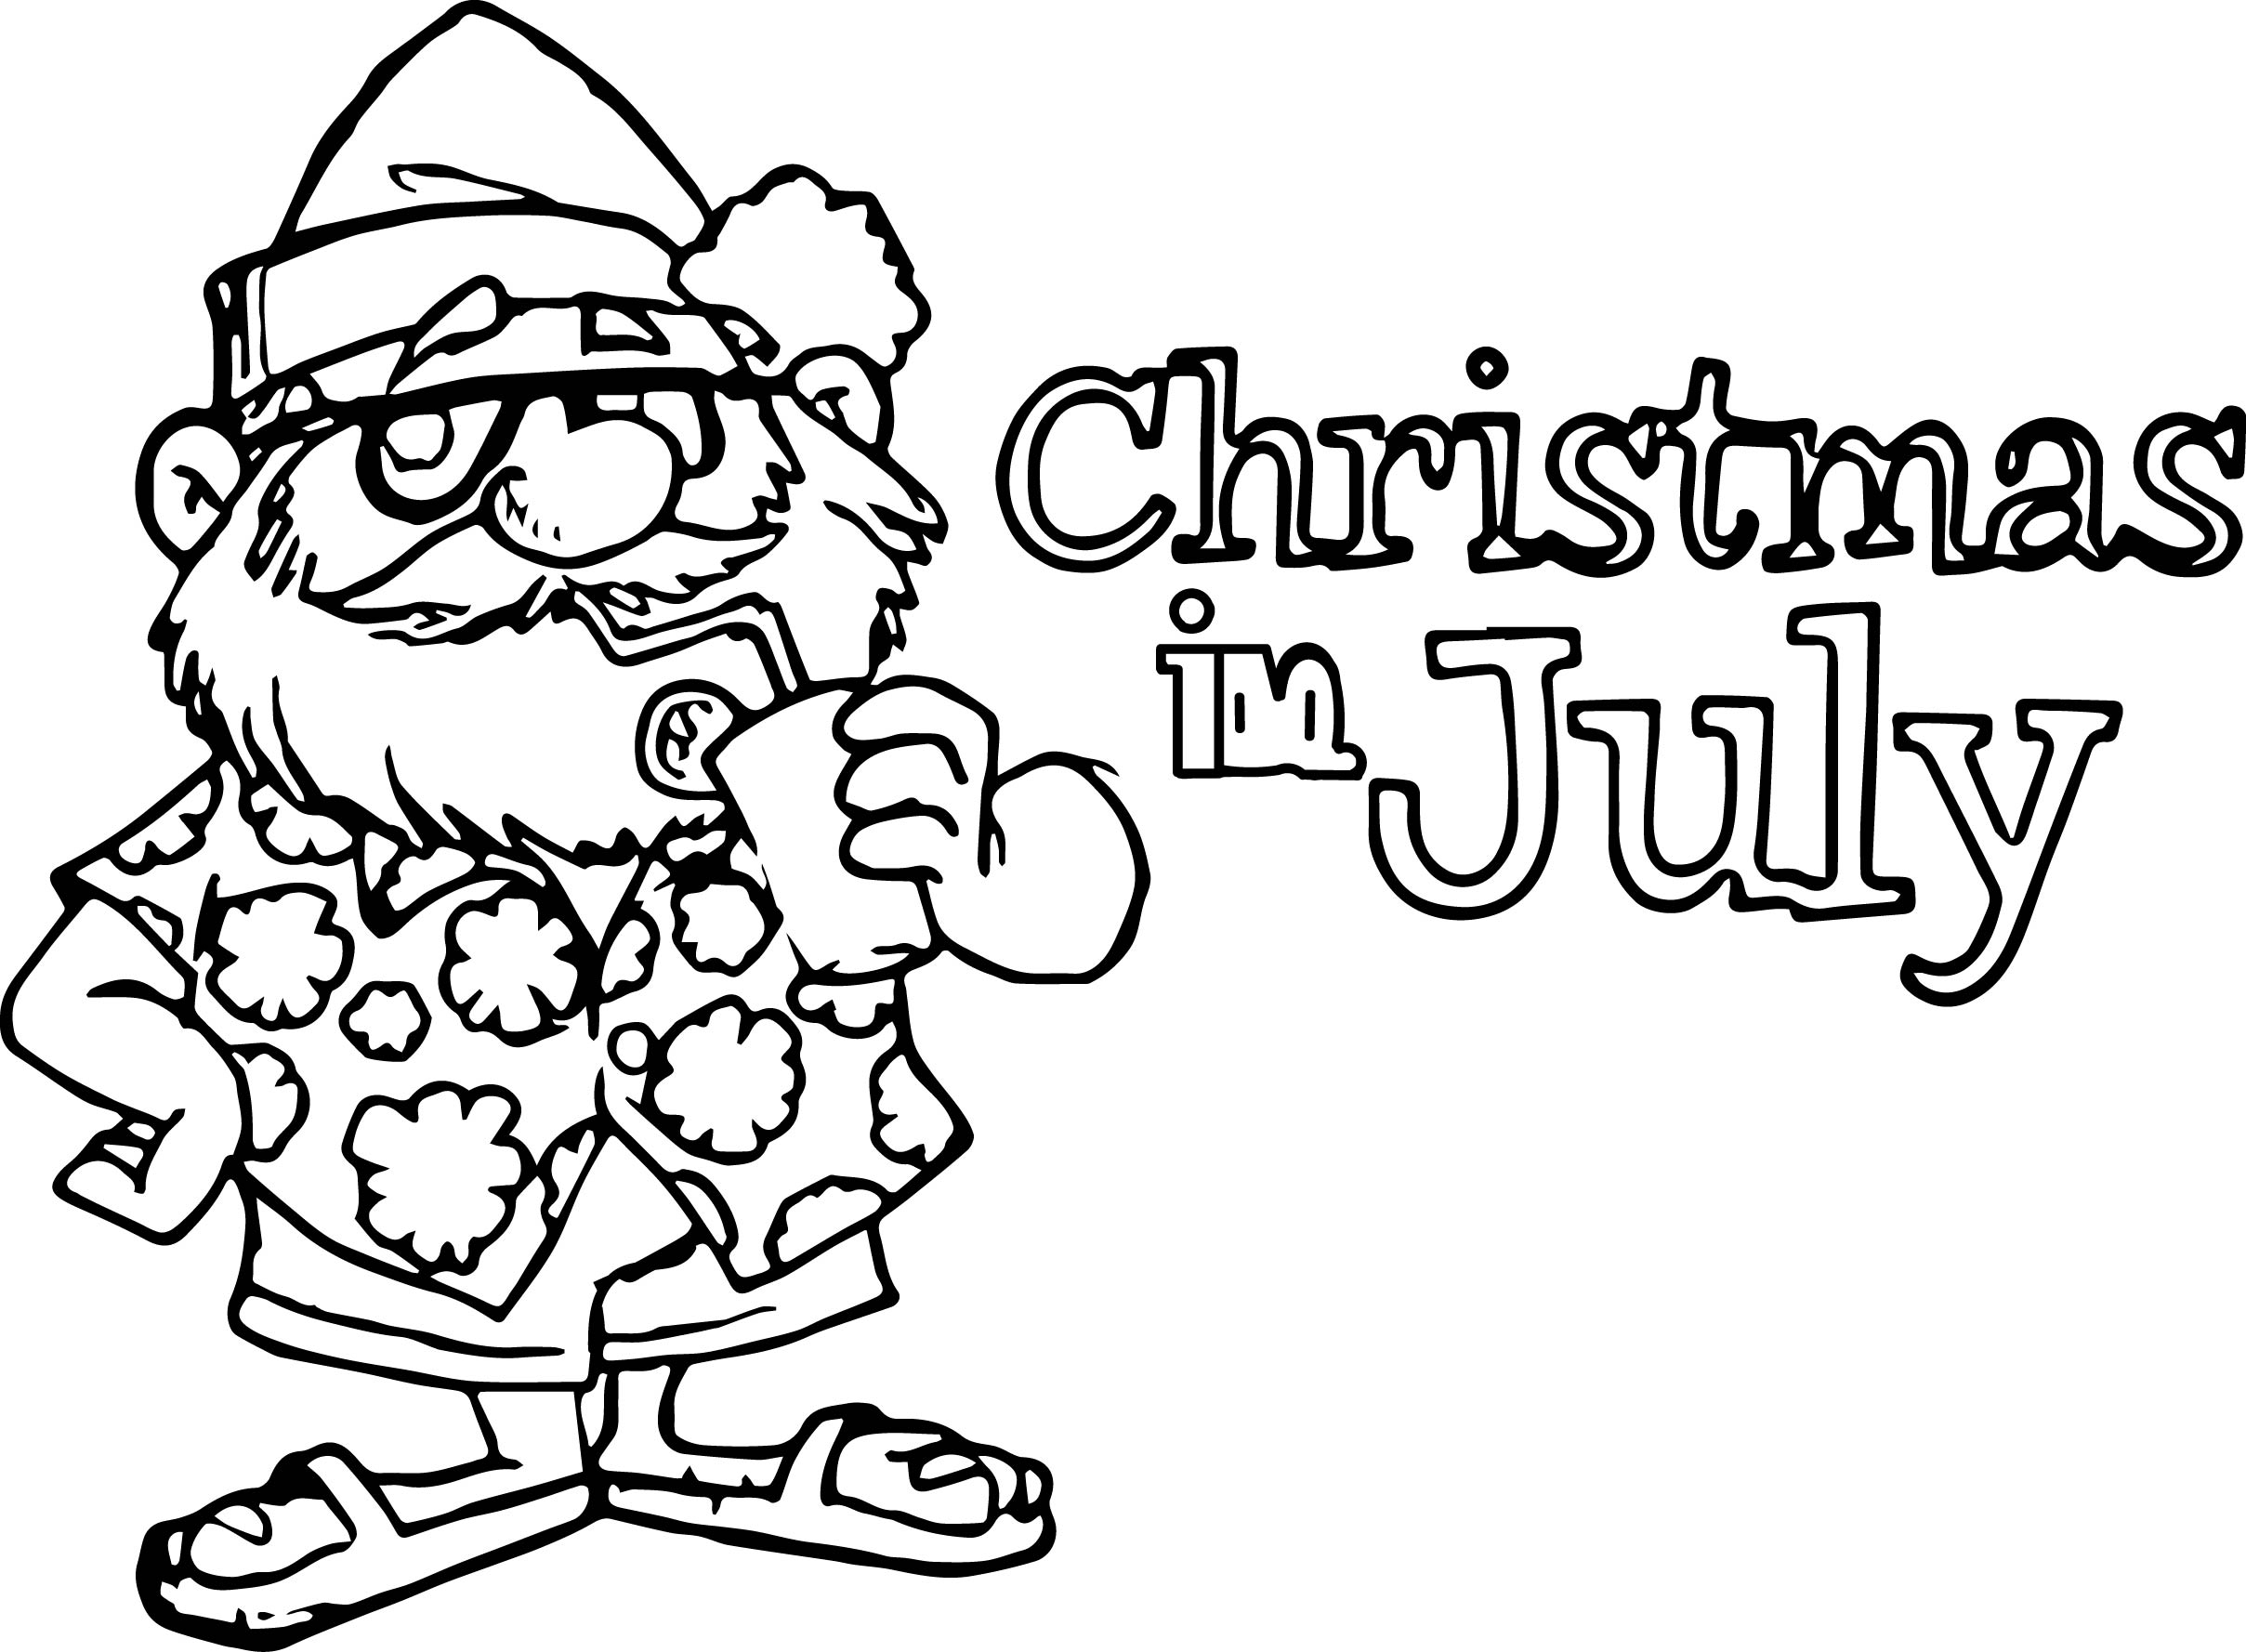 4th of july christmas in july coloring page wecoloringpage